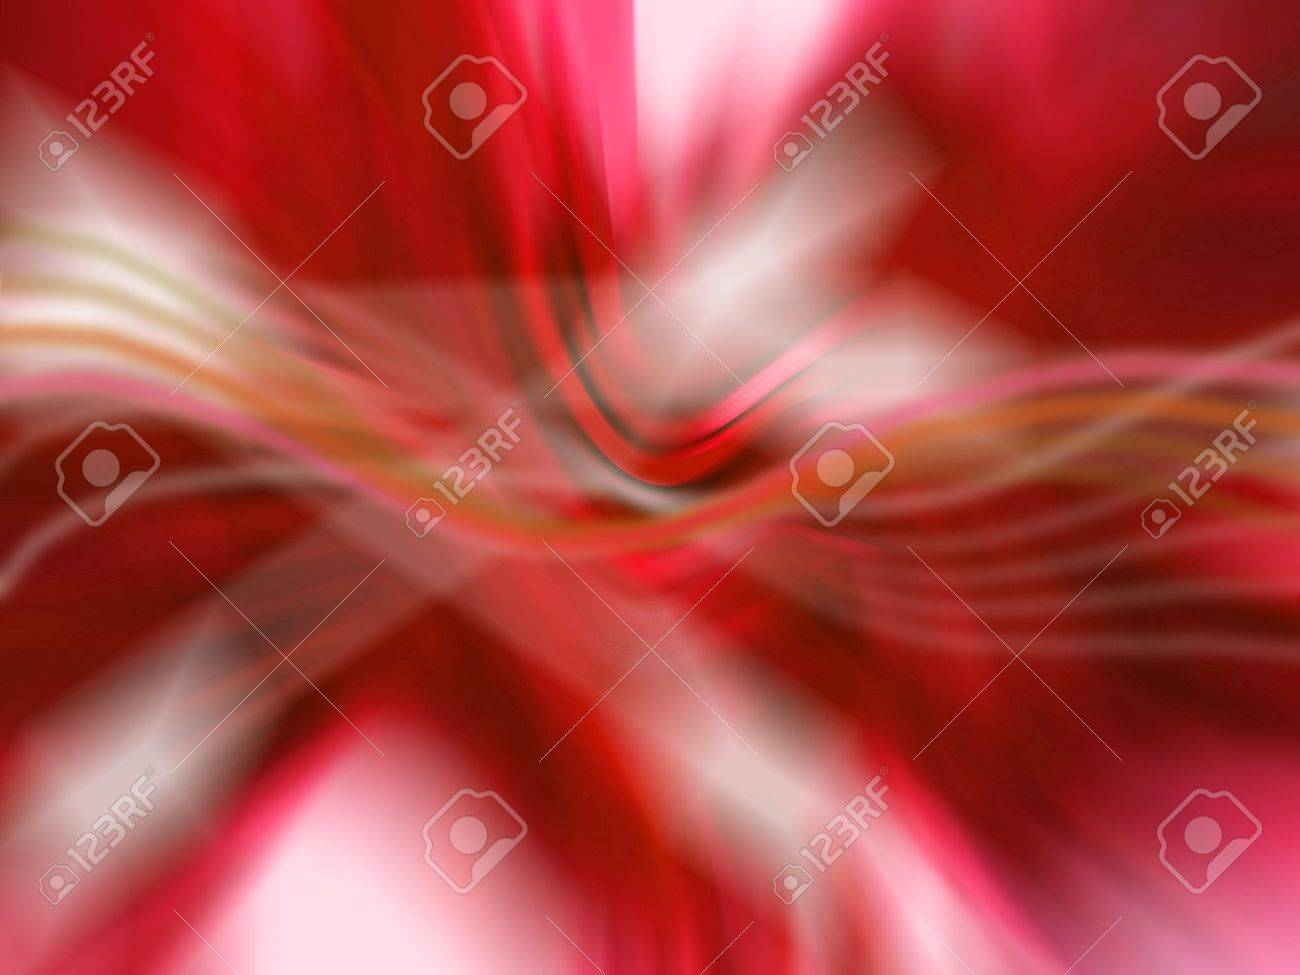 Abstract fluid red background with lights Stock Photo - 12807907